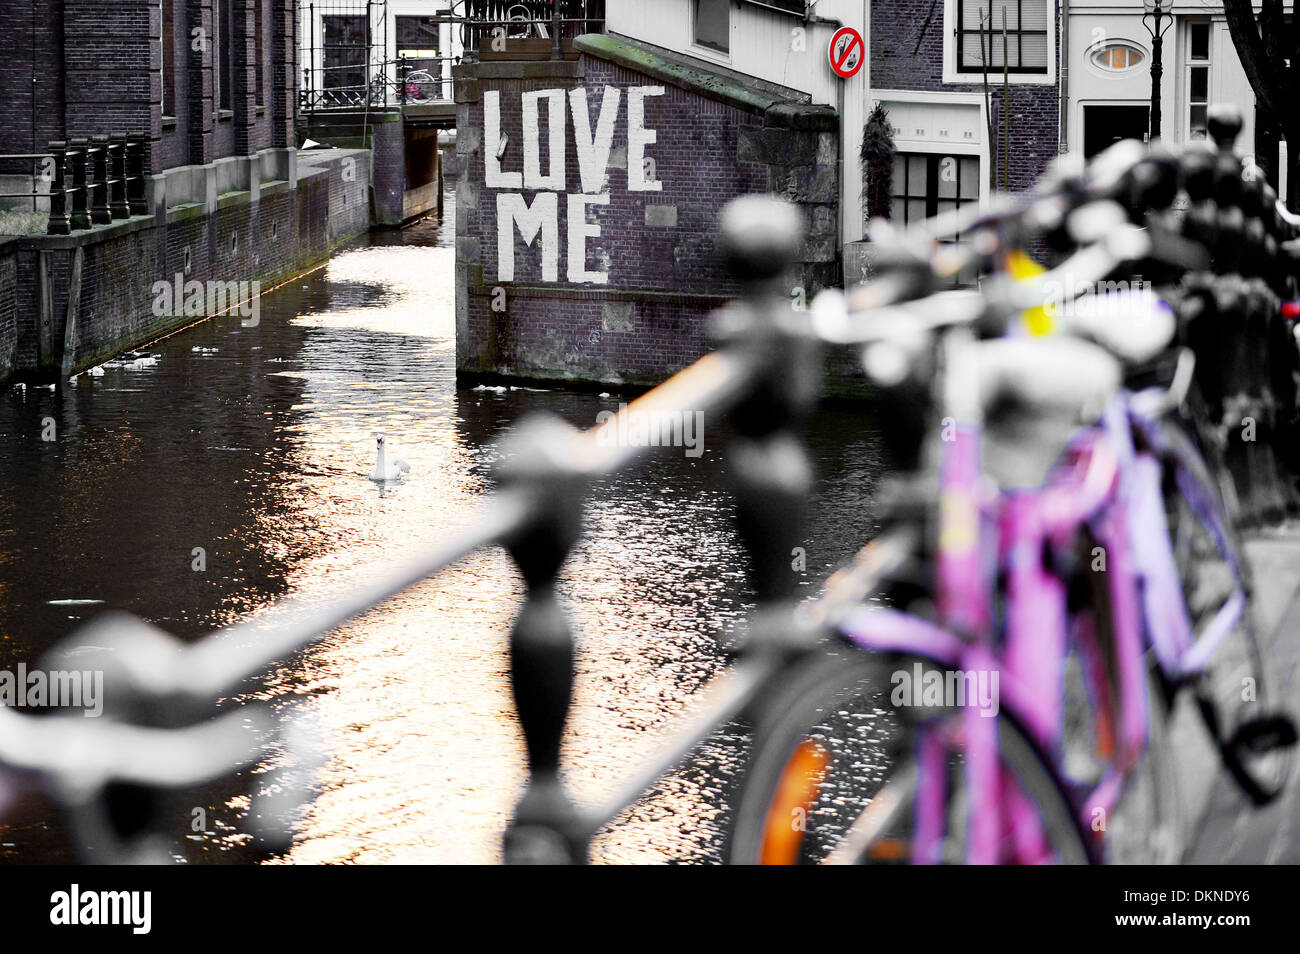 Graffiti wall amsterdam - Love Me Graffiti On The Wall Of A Waterway Canal In Amsterdam Stock Image